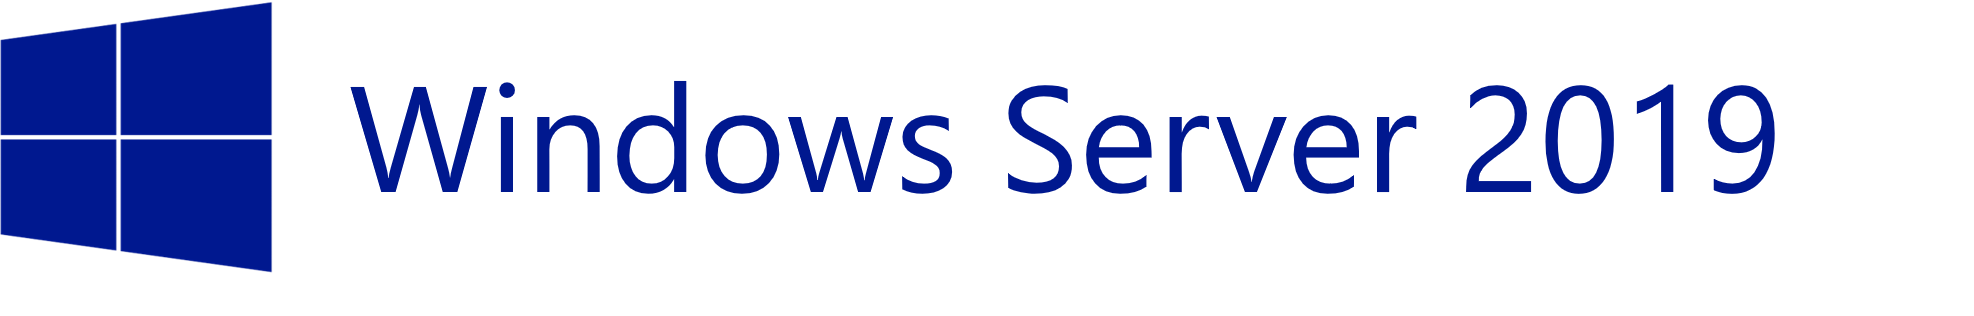 Image result for windows server 2019 icon